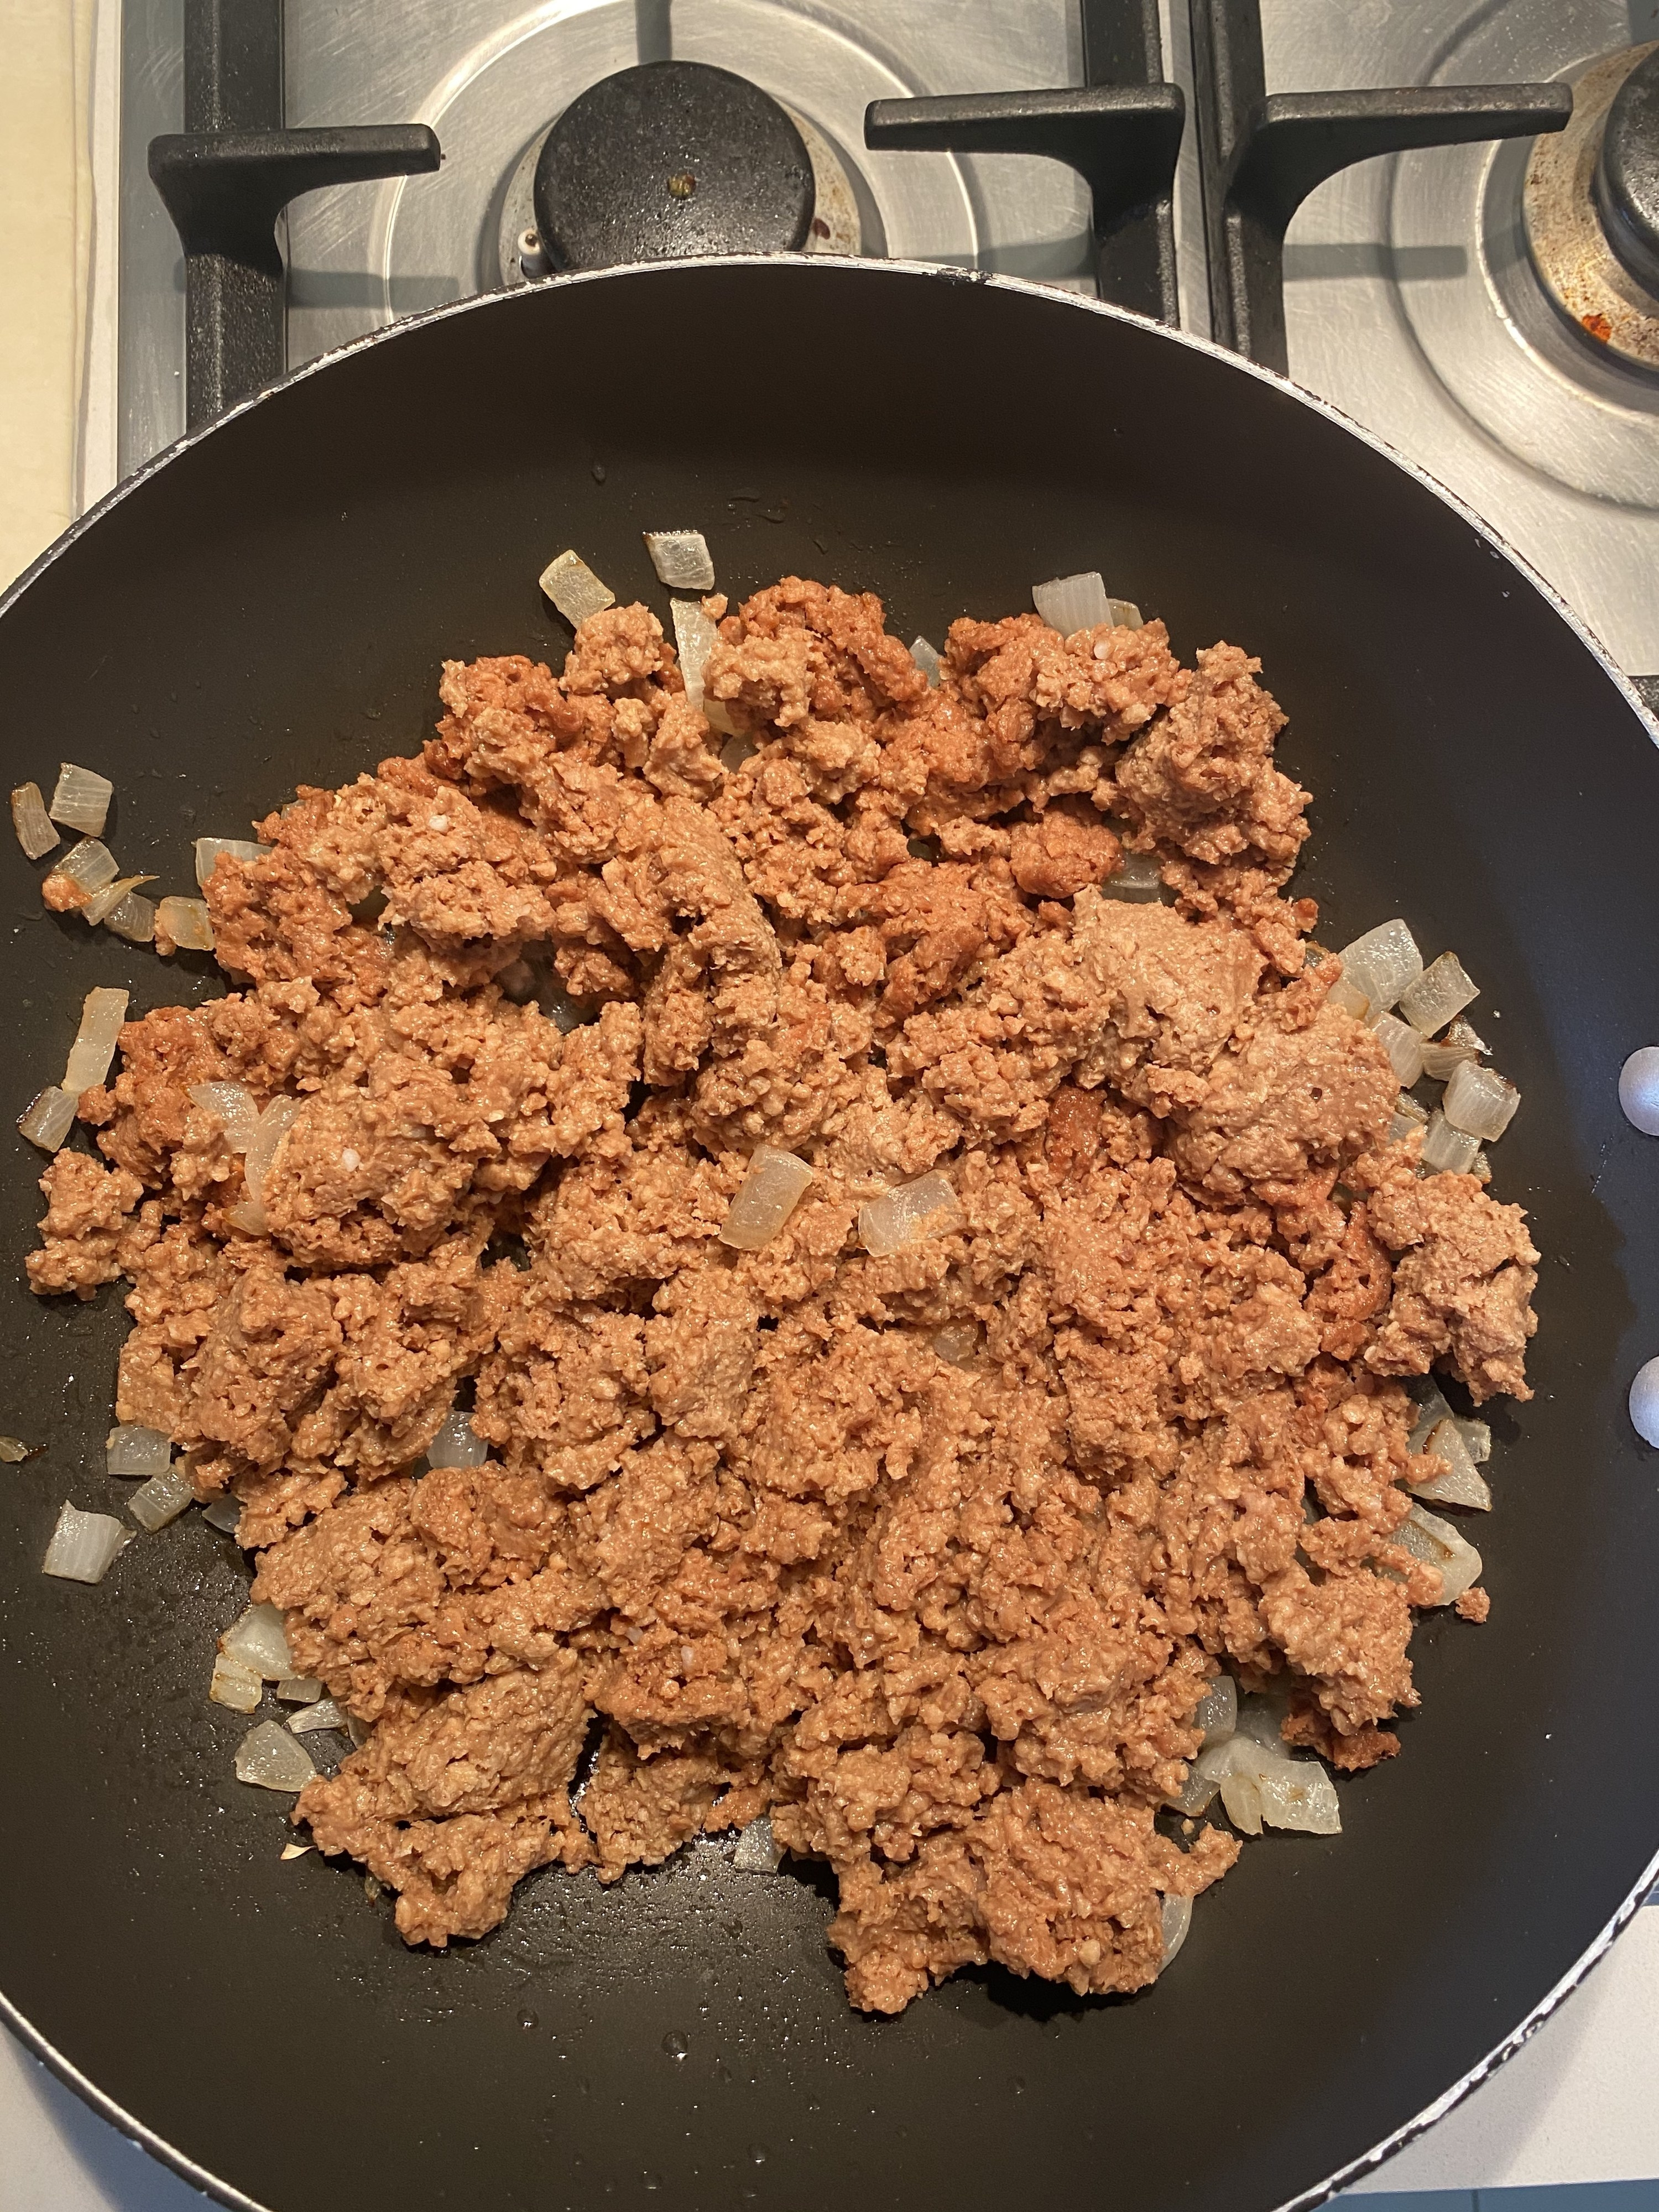 Uncooked mince in the pan with onions